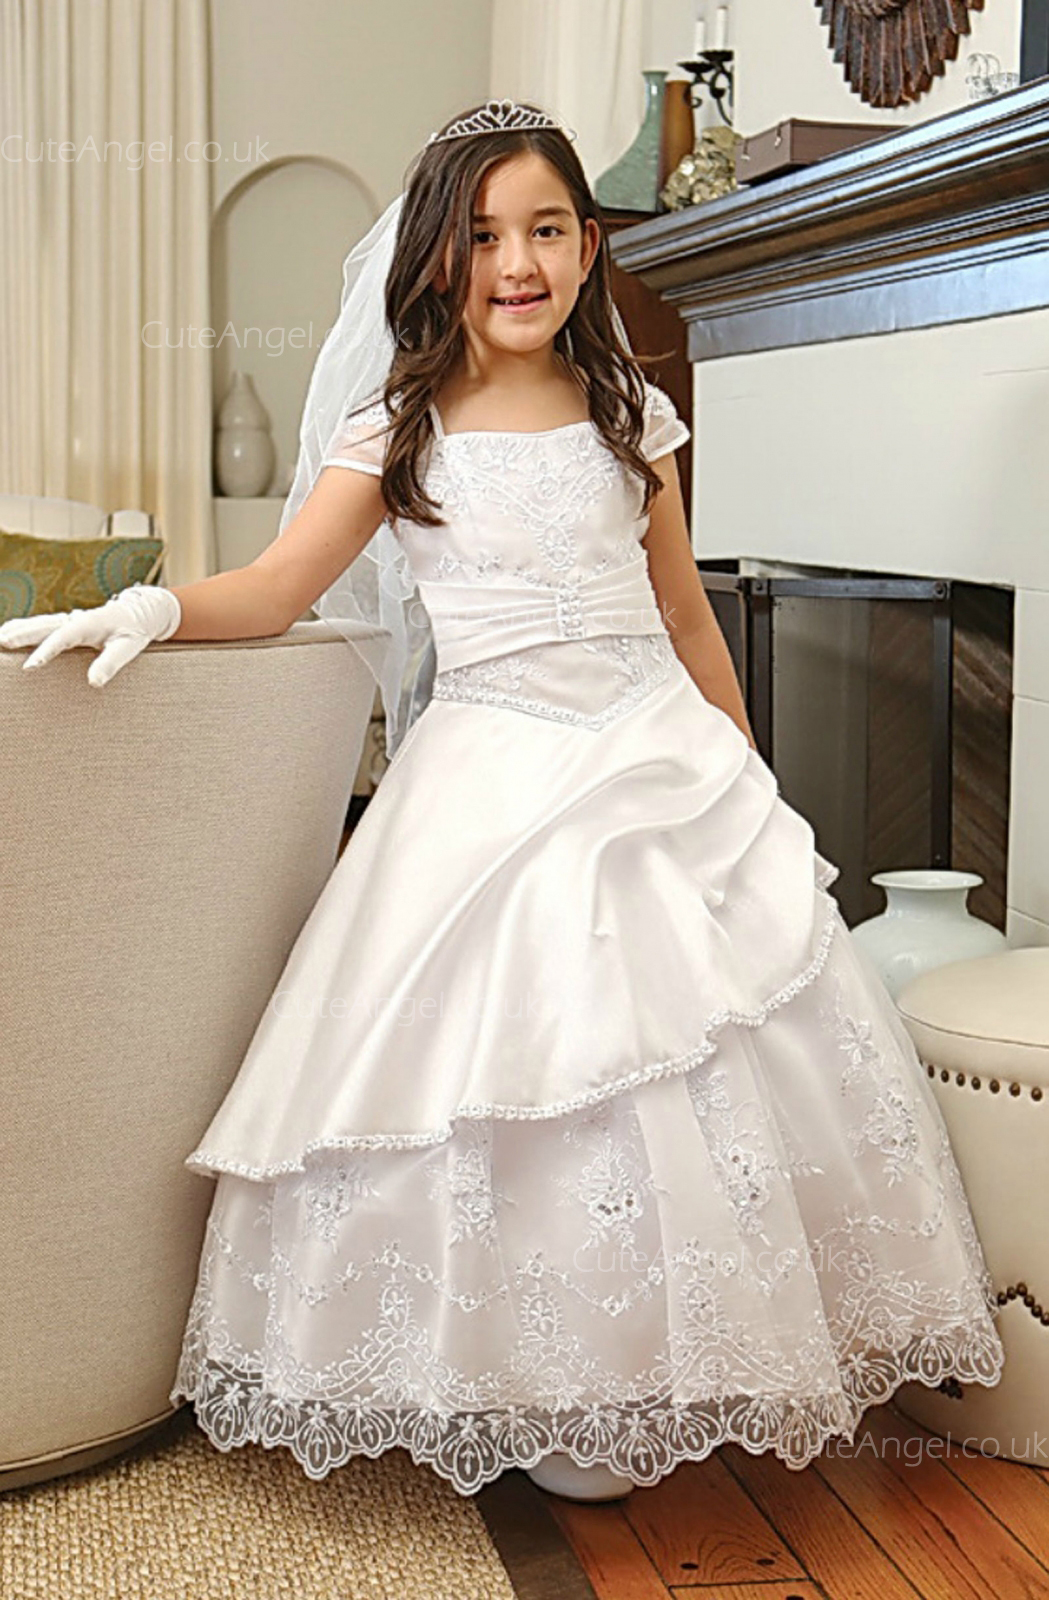 Girls Dress Style 061818 Ivory Floor-length Lace , Beading Bateau A-line Dress in Choice of Colour